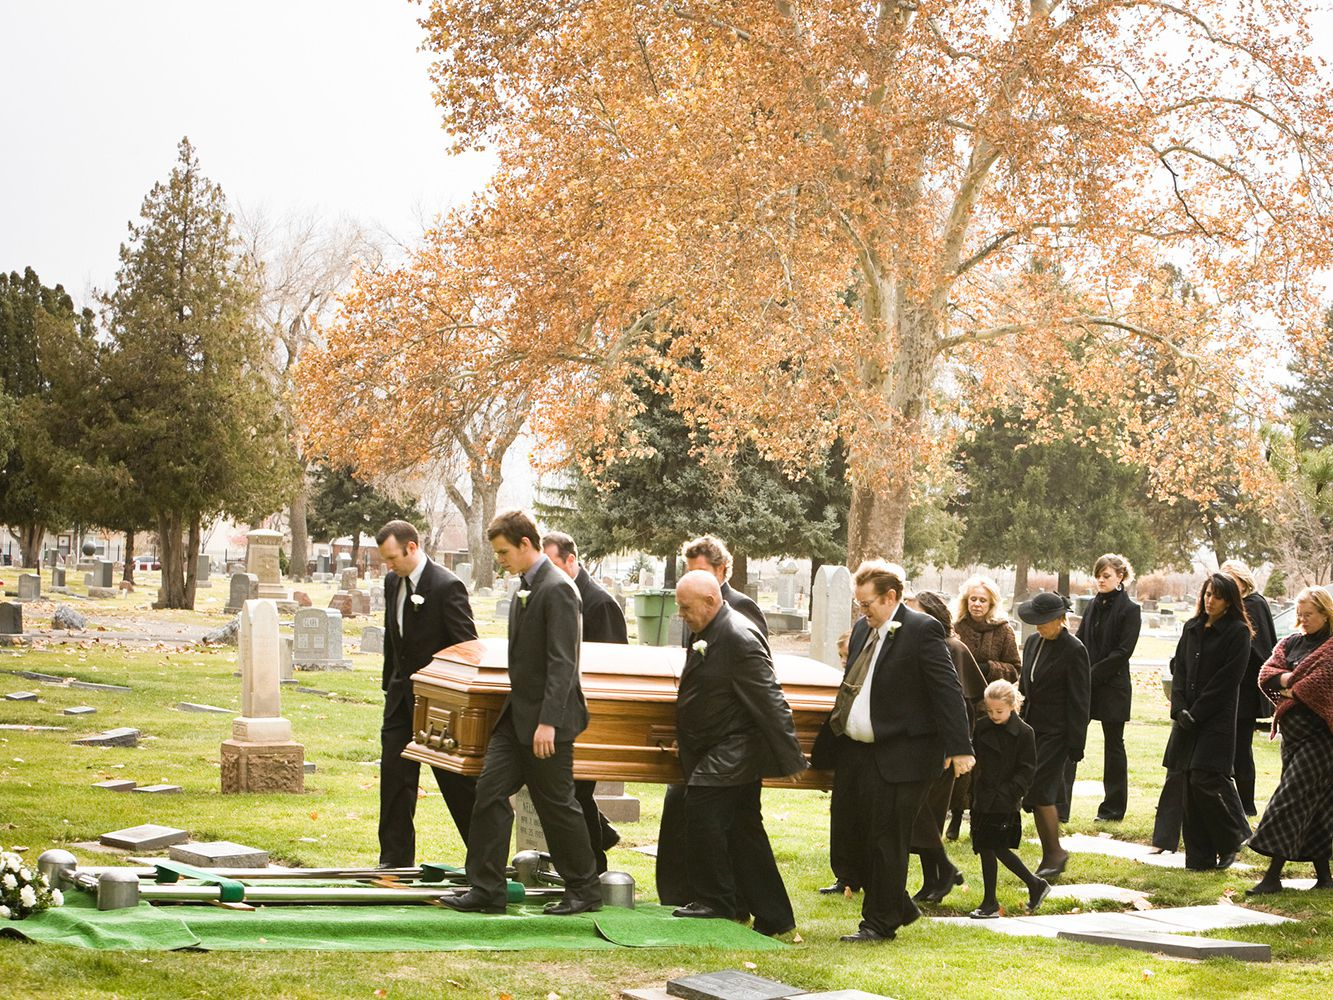 How to Handle Rude Behavior at a Funeral or Wake